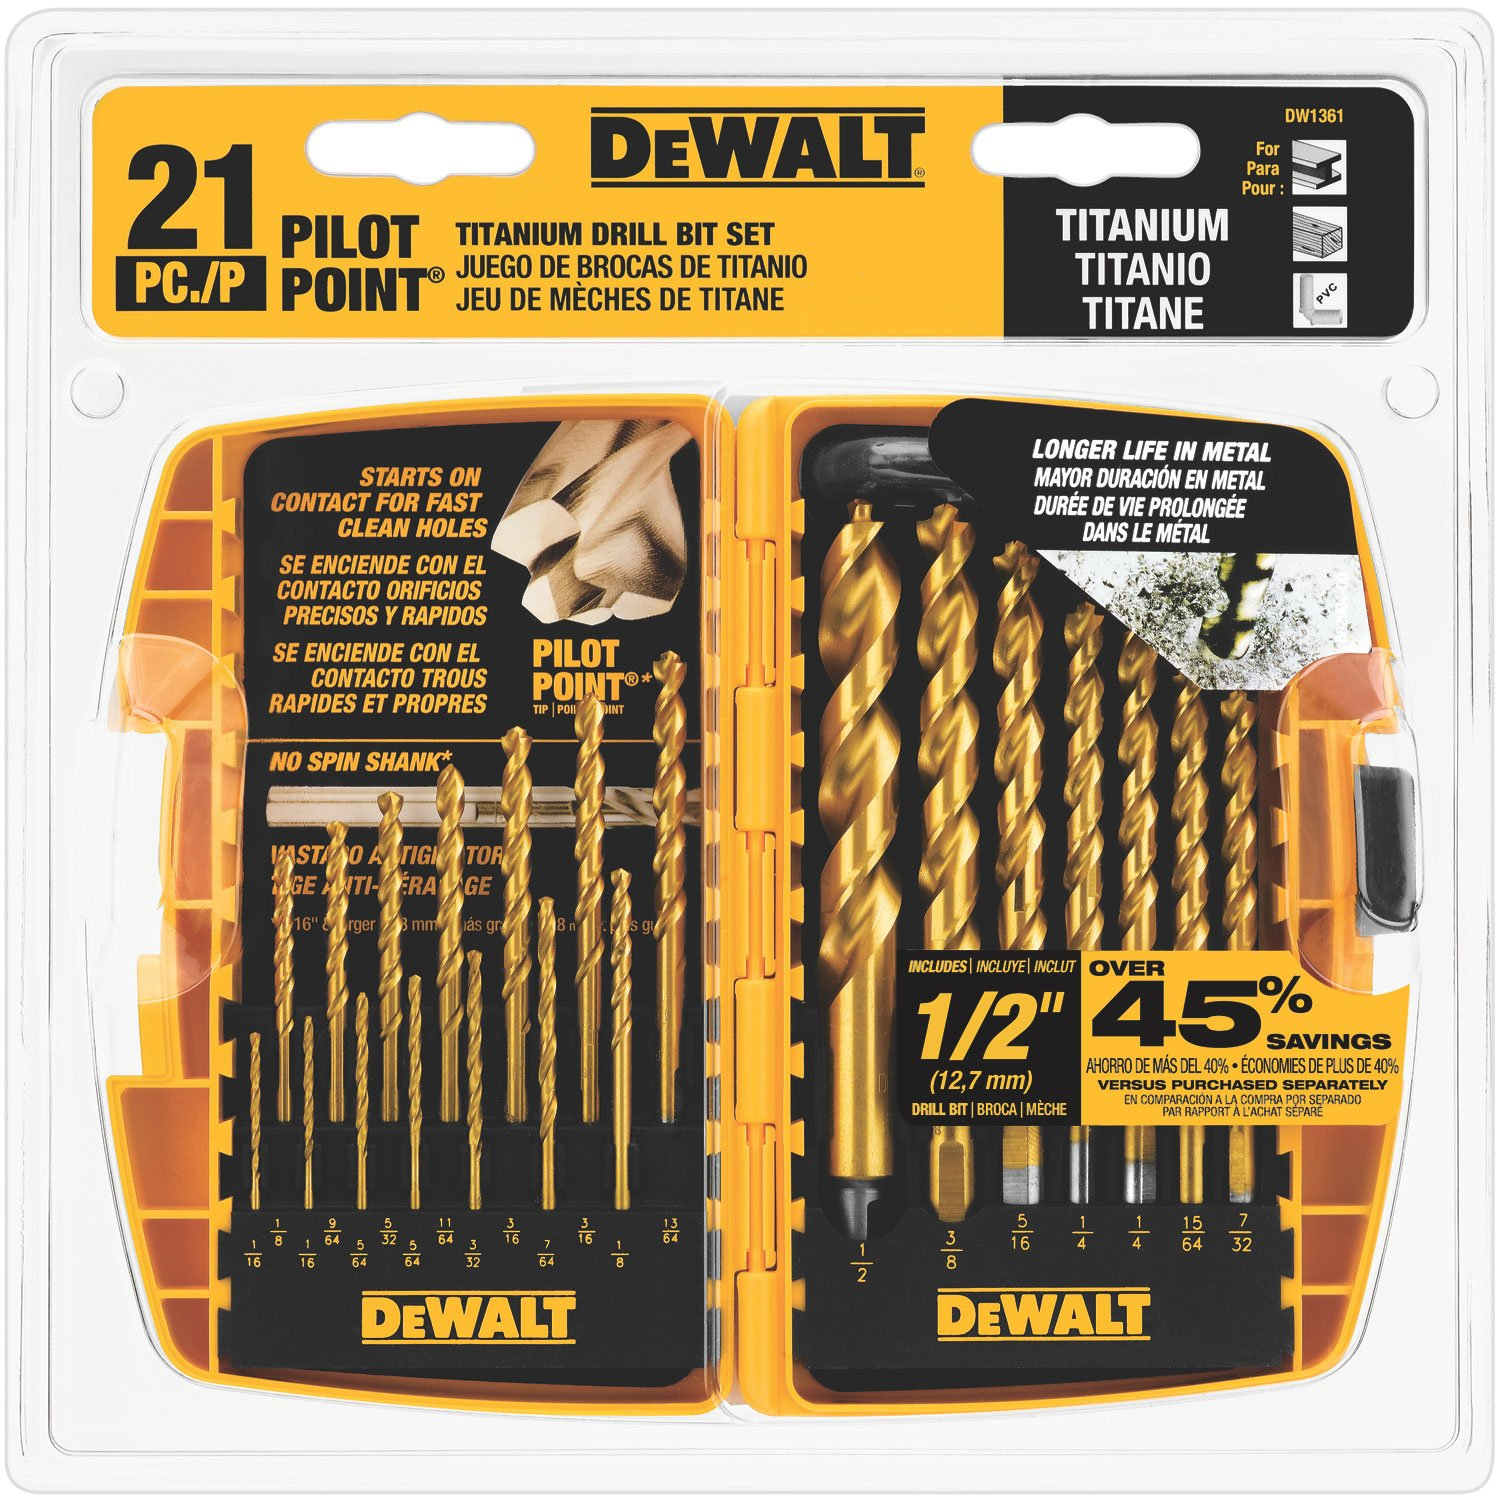 DEWALT DW1361 Titanium Pilot Point Drill Bit Set, 21-Piece $24.97